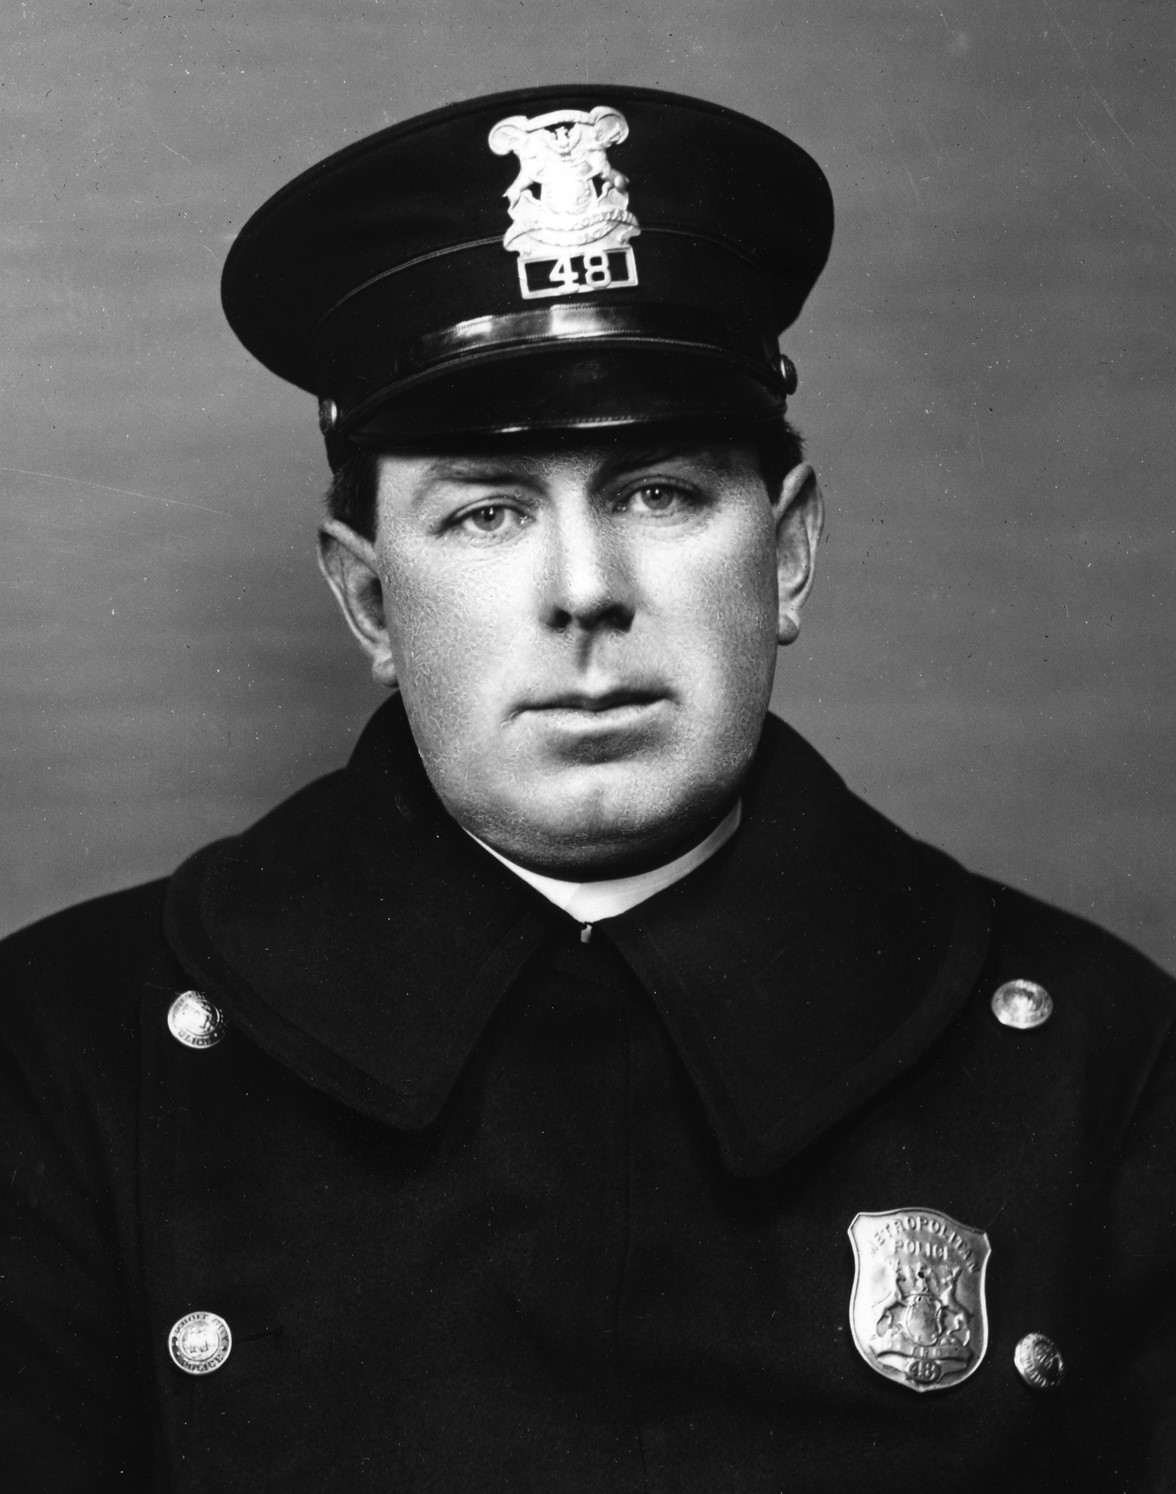 Sergeant Thomas J. Collins | Detroit Police Department, Michigan